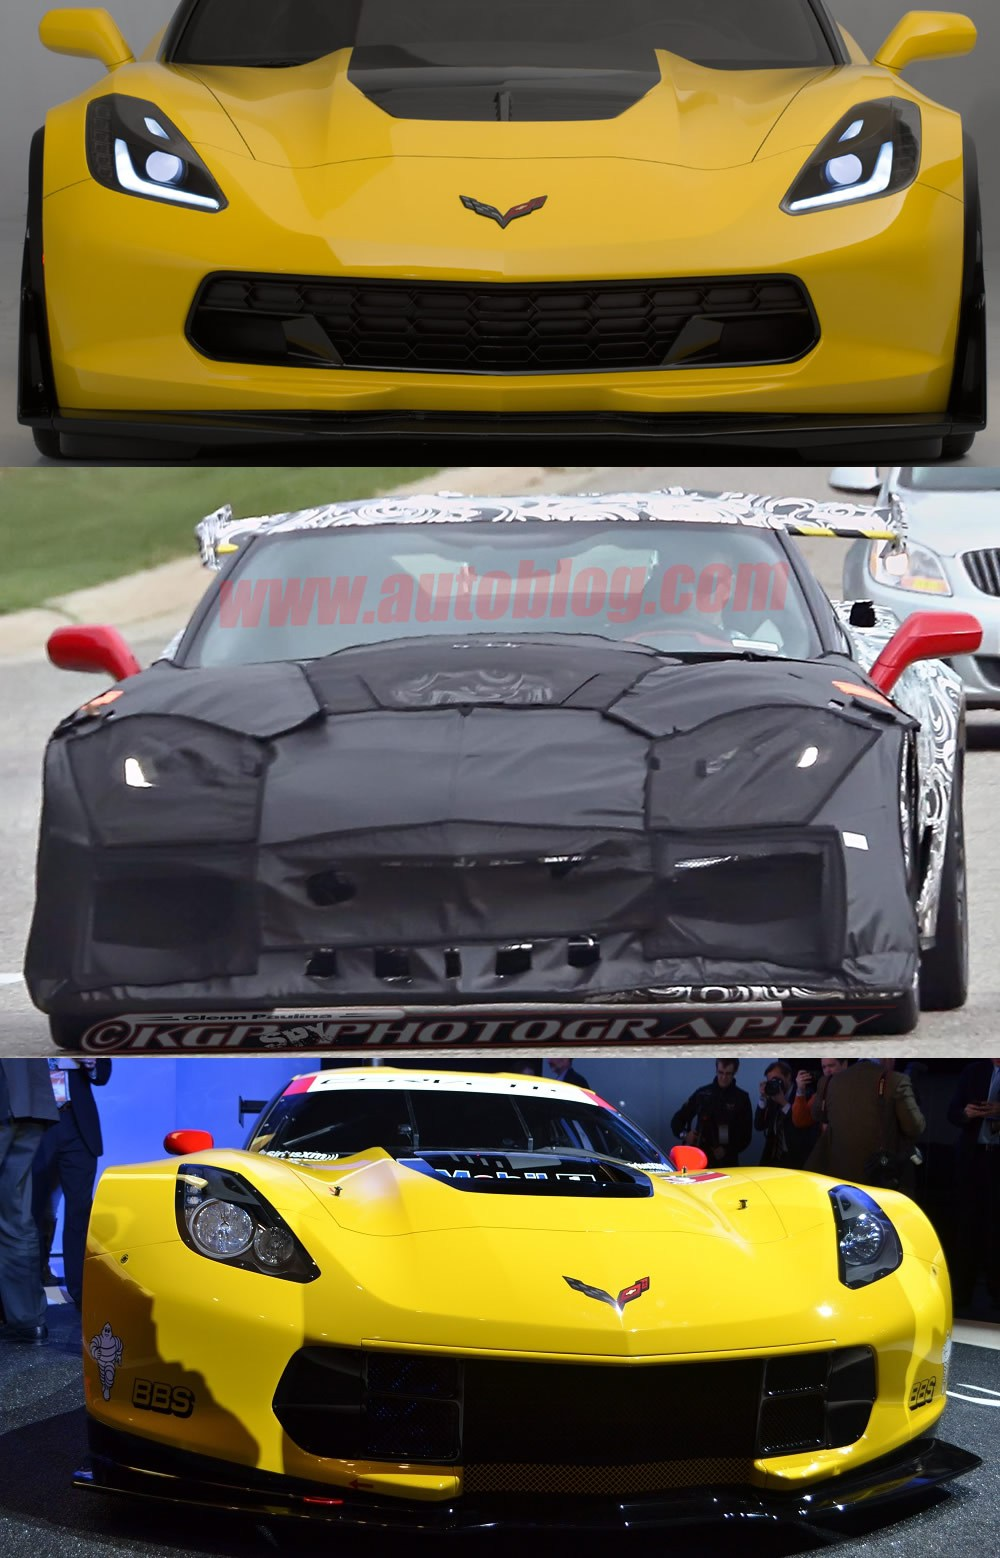 2015 Corvette Z06 on top, 2018 Corvette ZR1 Test Mule in the middle, Corvette Racing's C7.R on the bottom.